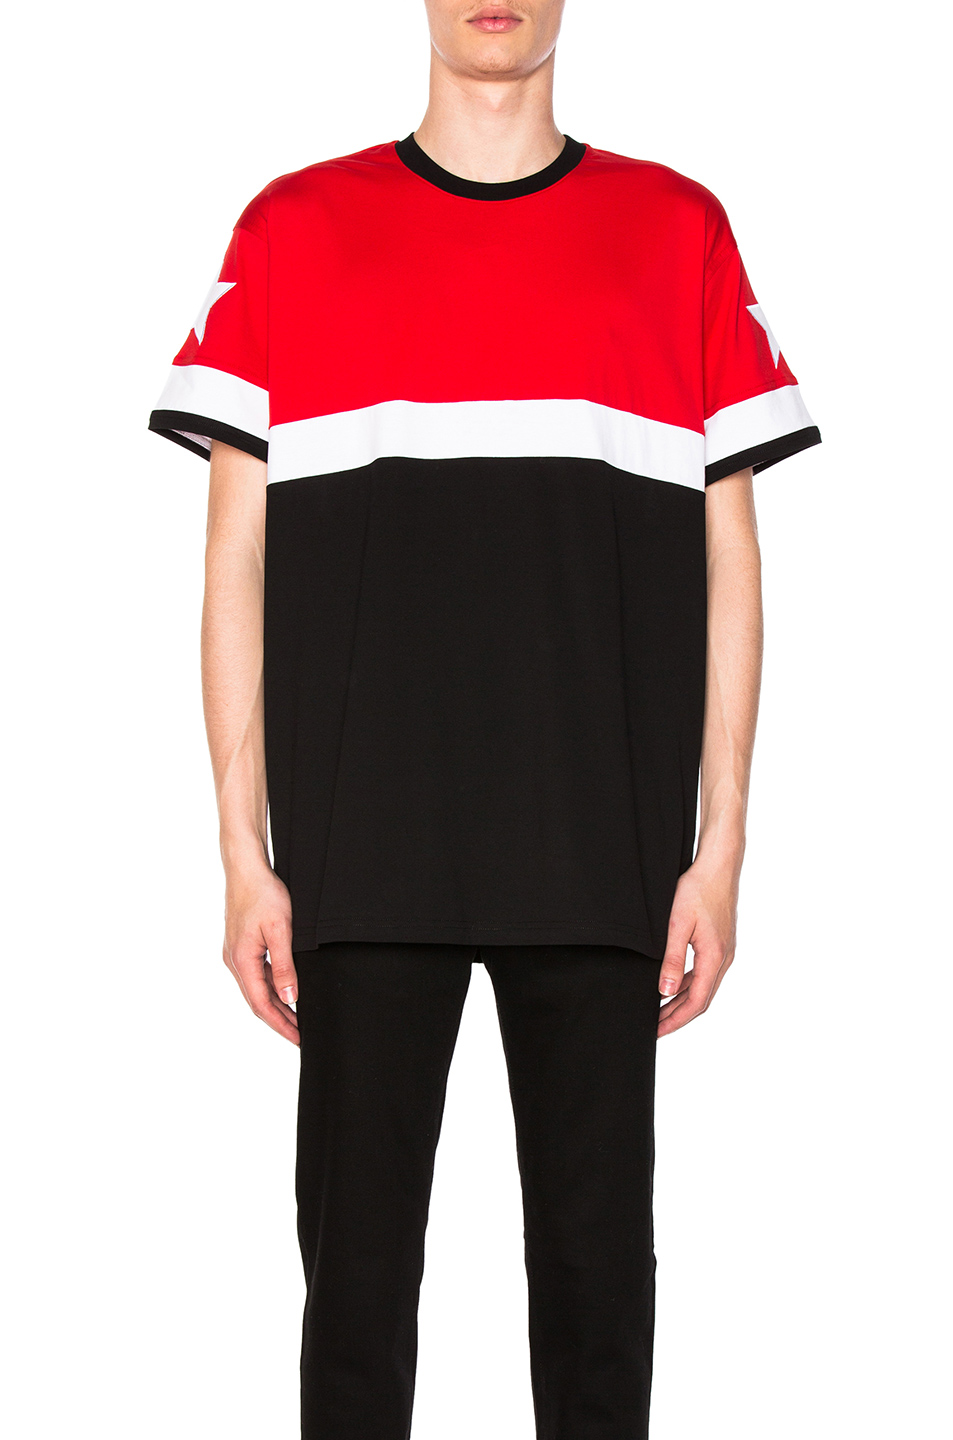 Givenchy Colorblock Tee in Red,Black